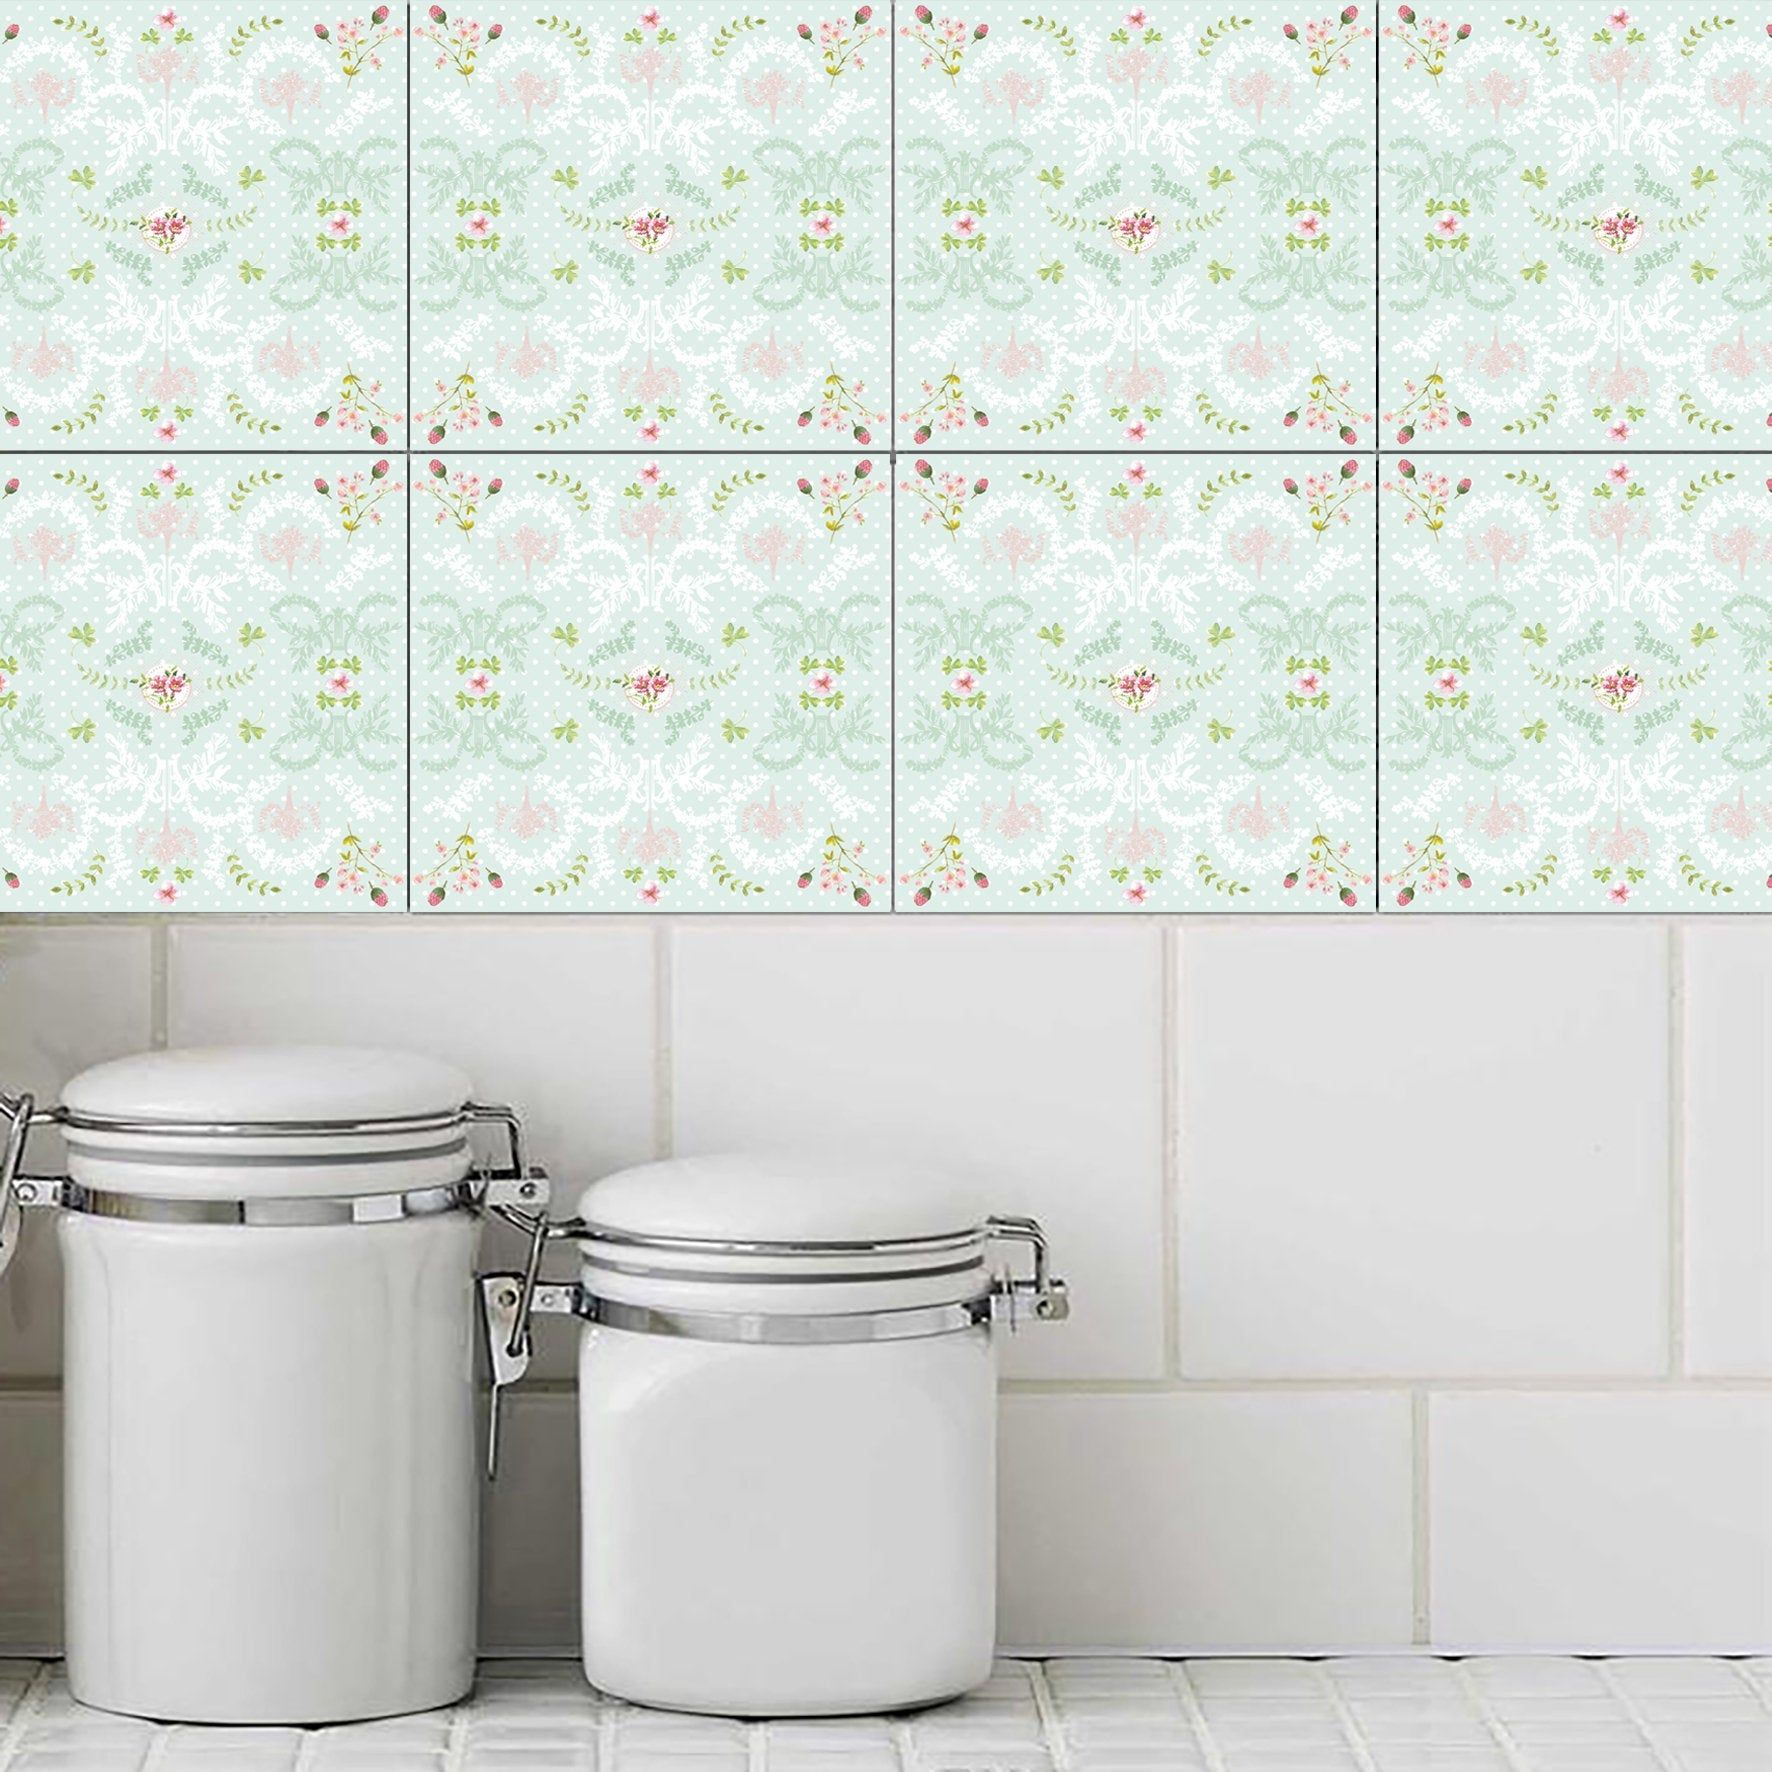 Mint Green Wall Tile Stickers Waterproof Tile Decals Set Of Etsy Tile Decals Mint Green Walls Tile Covers